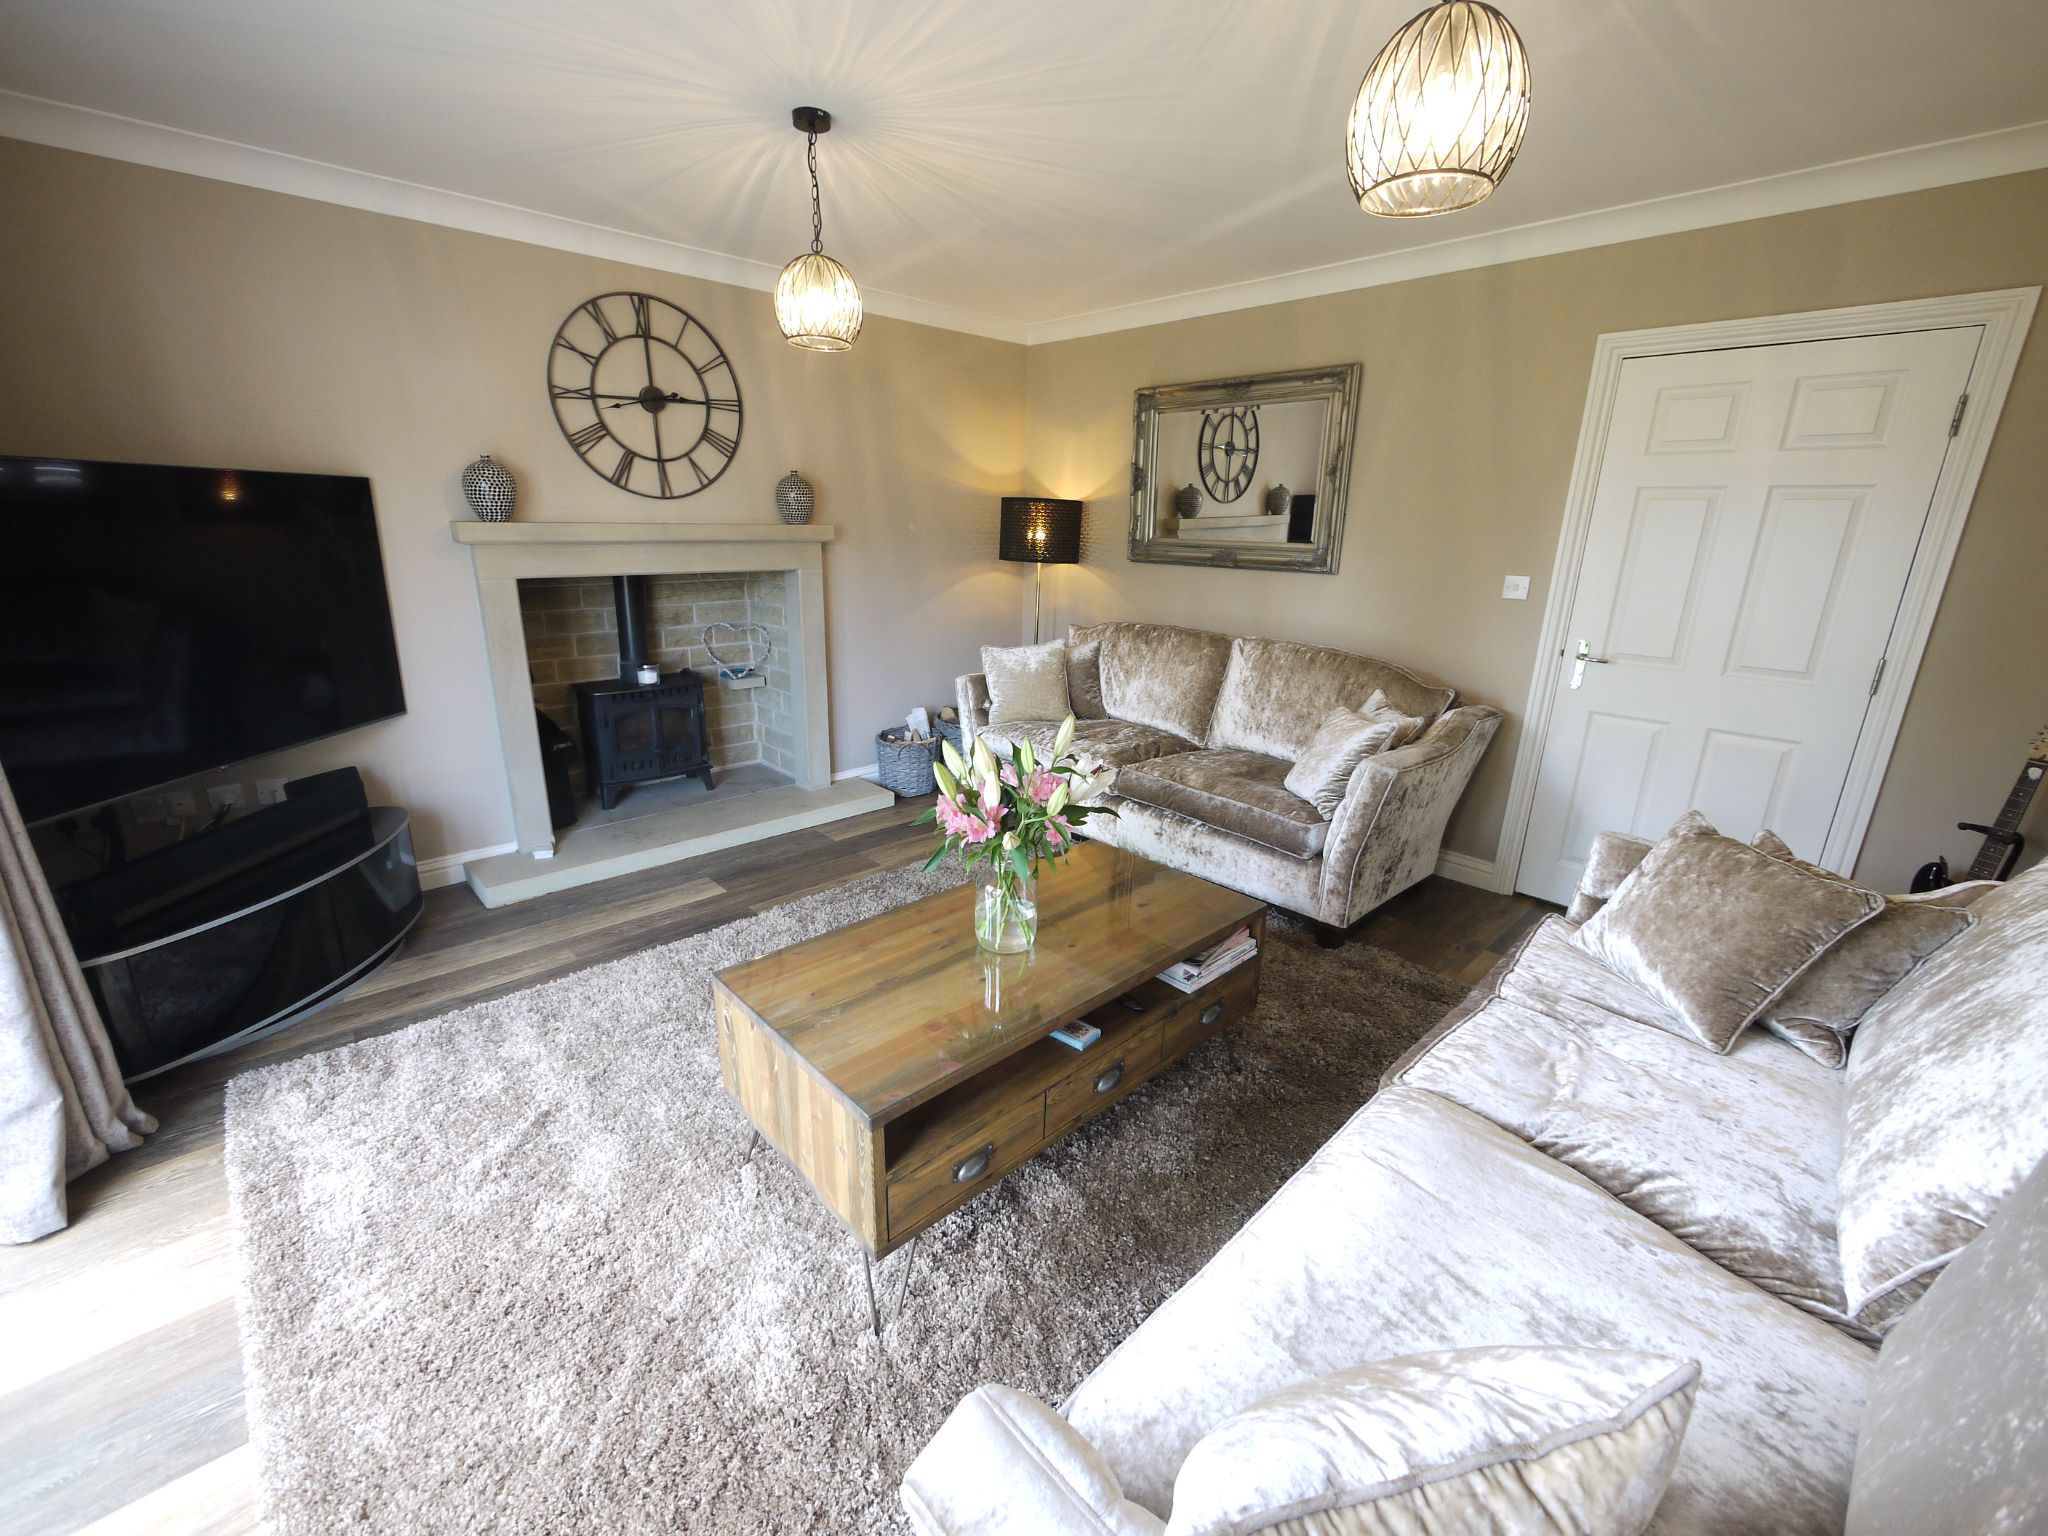 4 bedroom detached house SSTC in Halifax - Lounge.